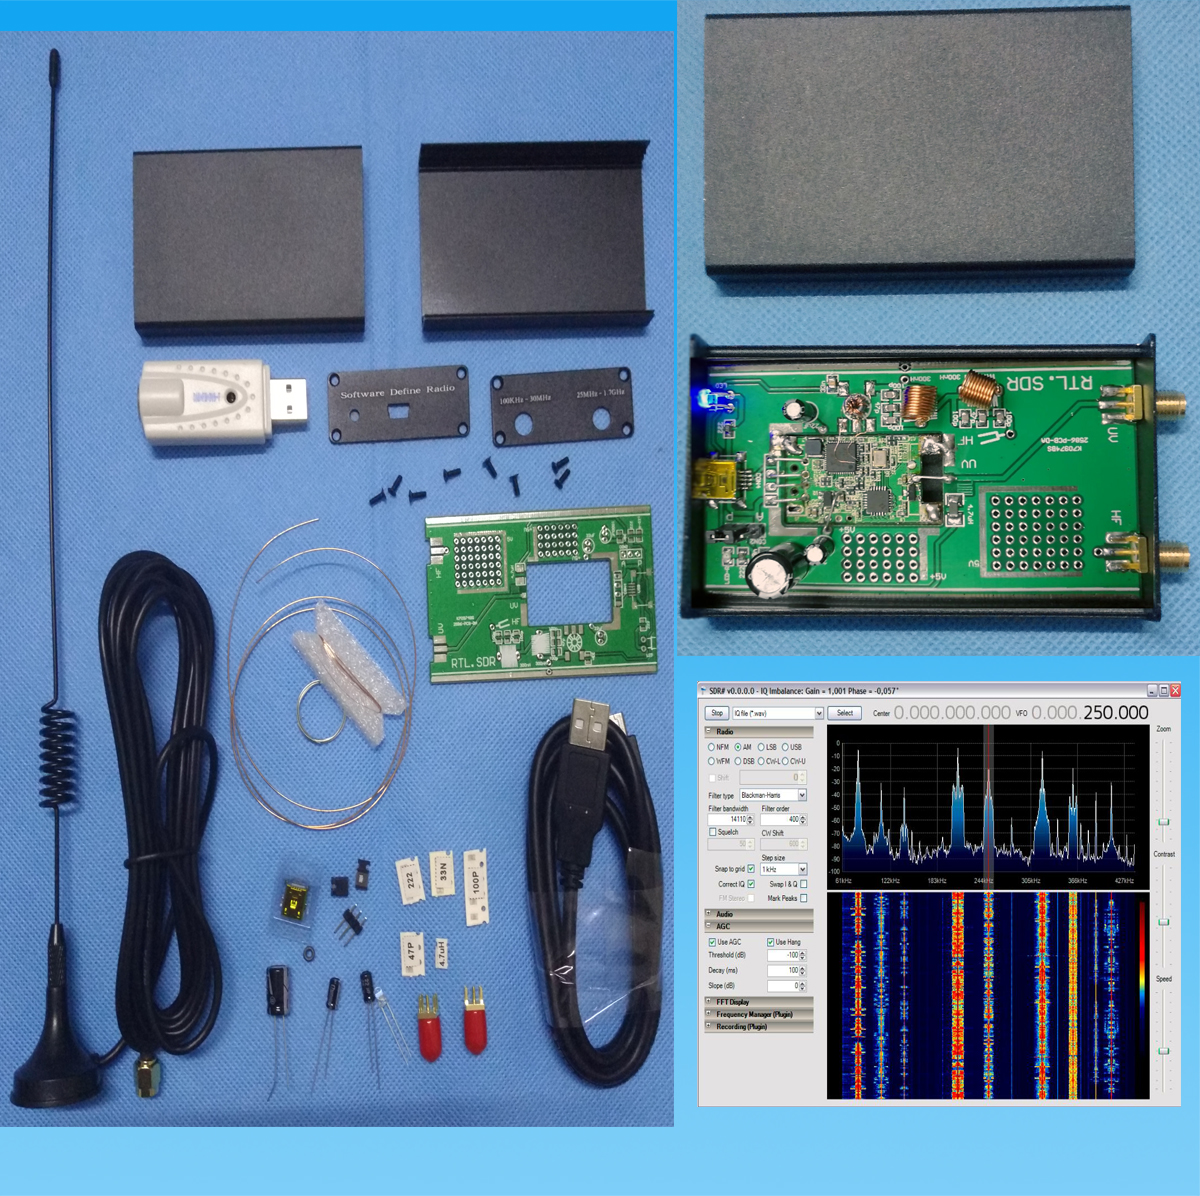 Full-band RTL SDR Short-wave Receiver Kit